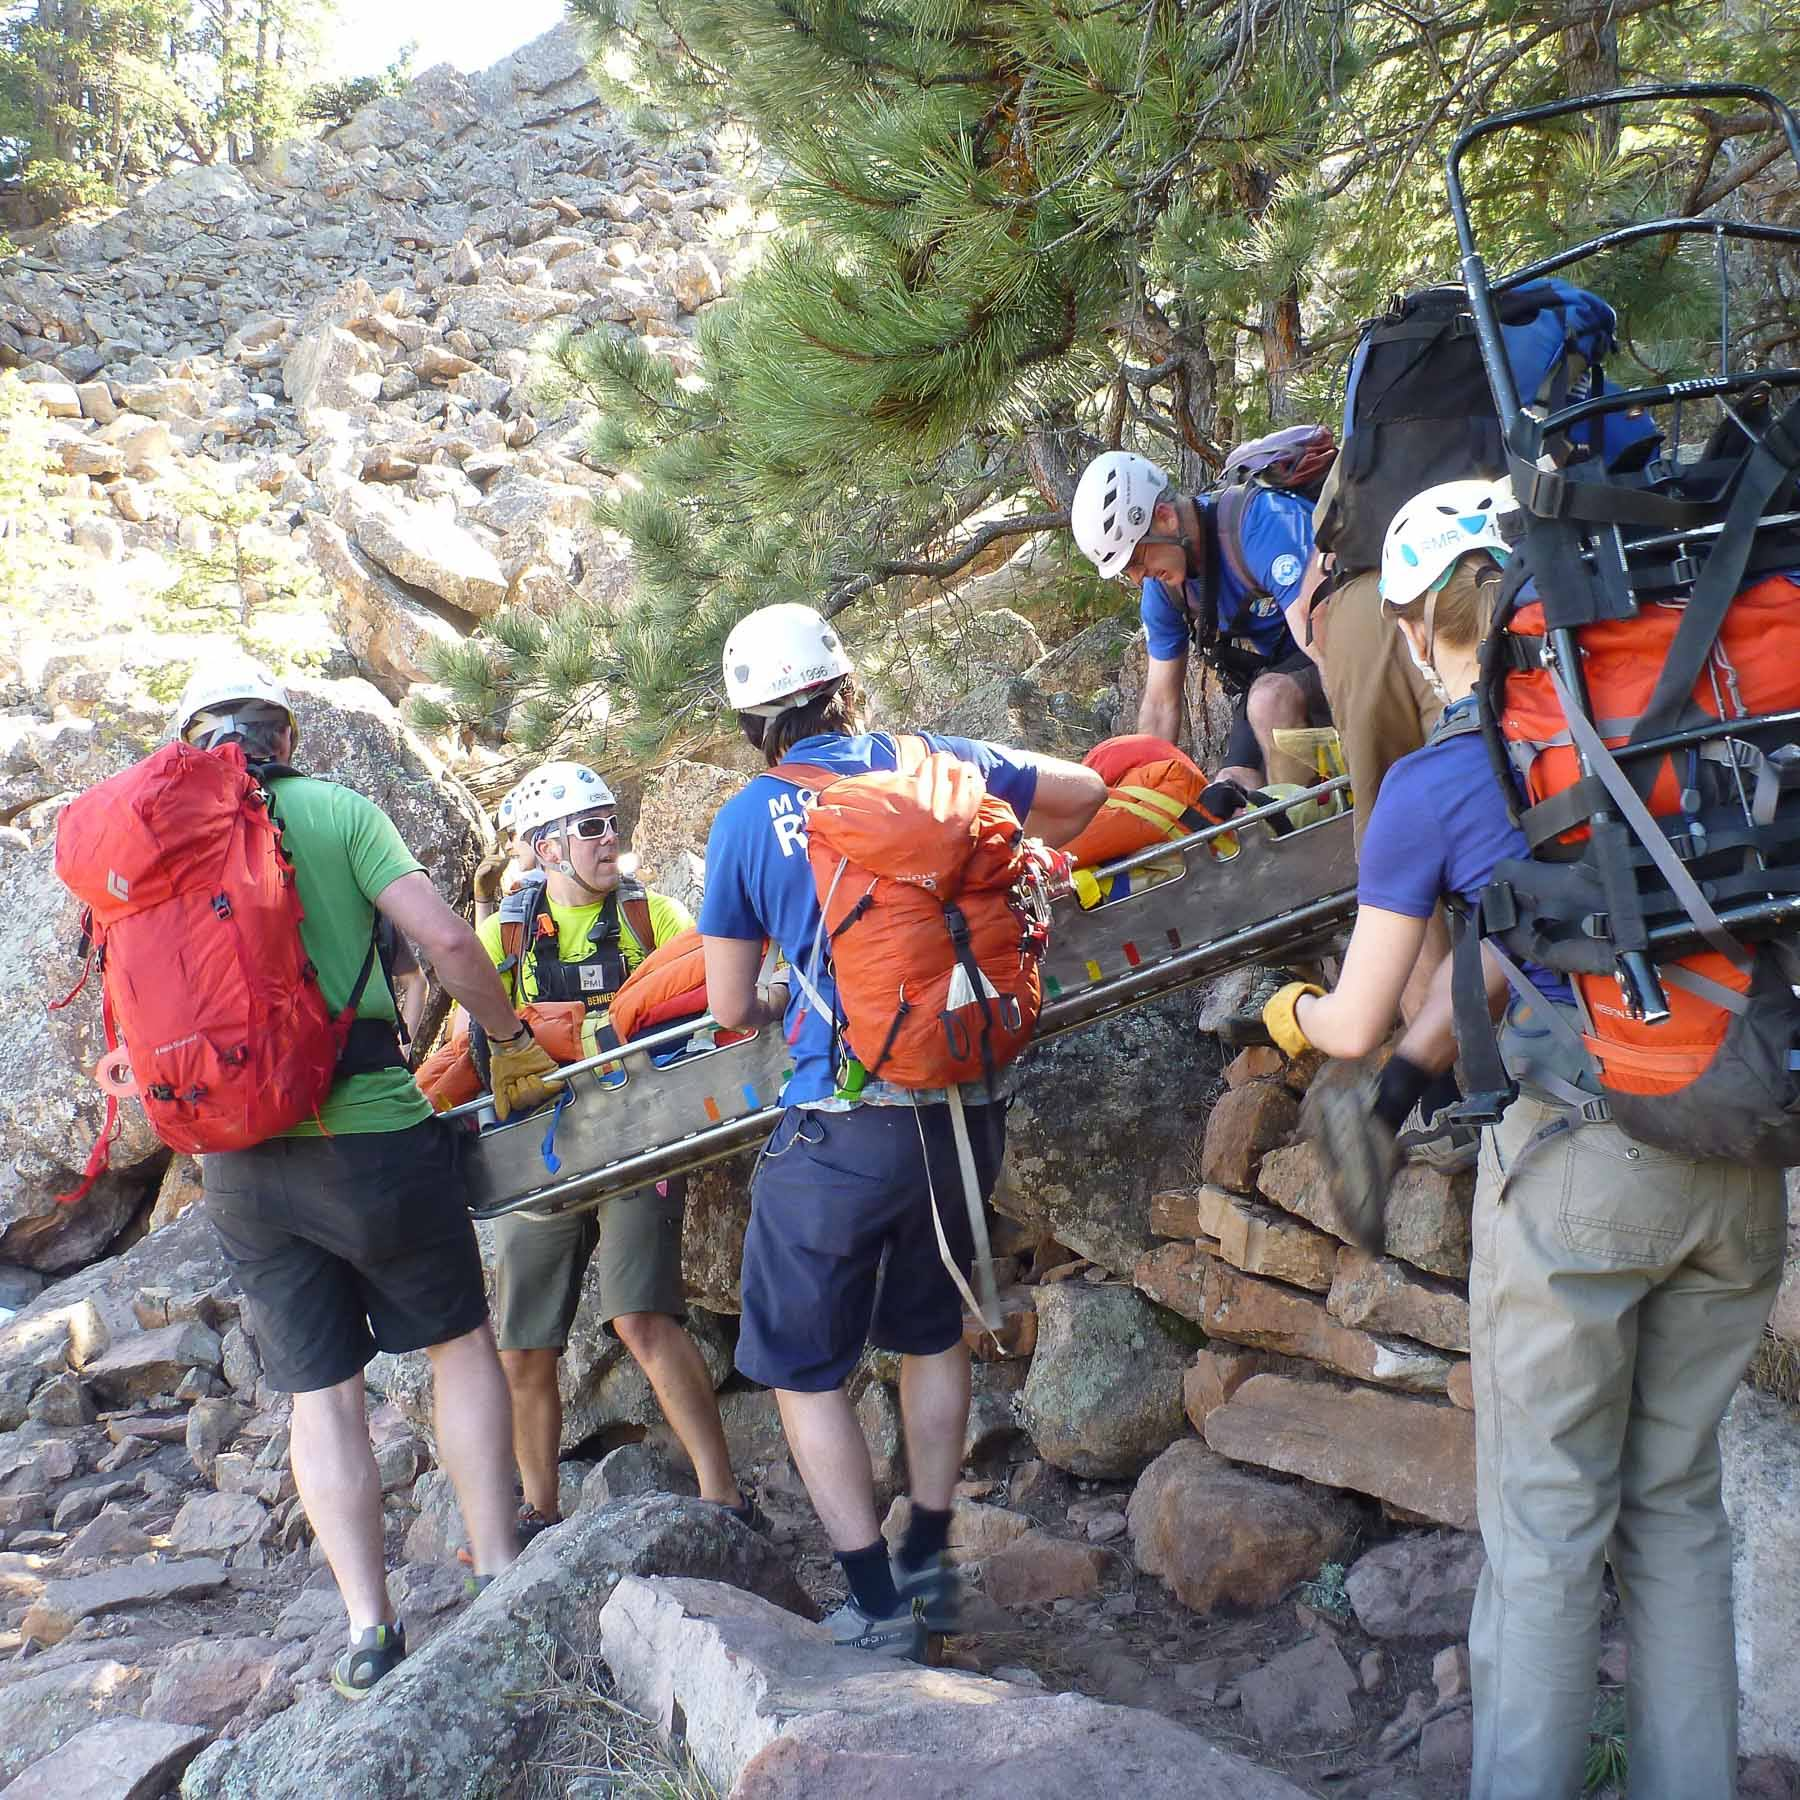 RMRG members approaching the lower scree field with rescued hiker securely in the litter.